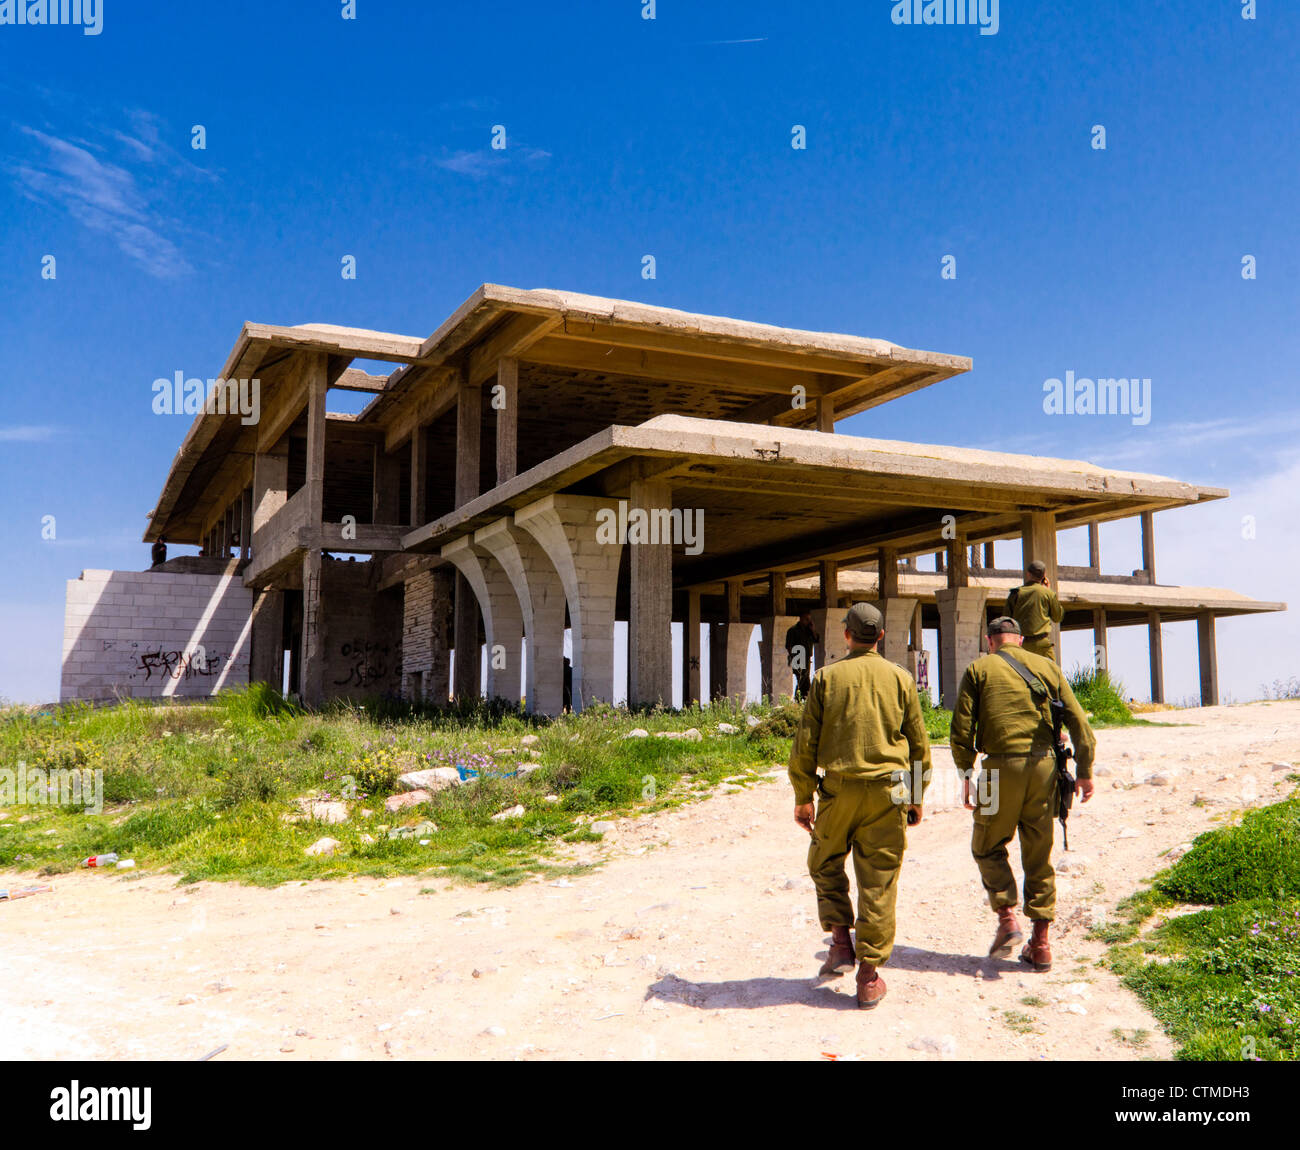 Jerusalem, Israel. Soldiers near the skeleton of the summer palace of Jordanian king Hussein, captured unfinished - Stock Image